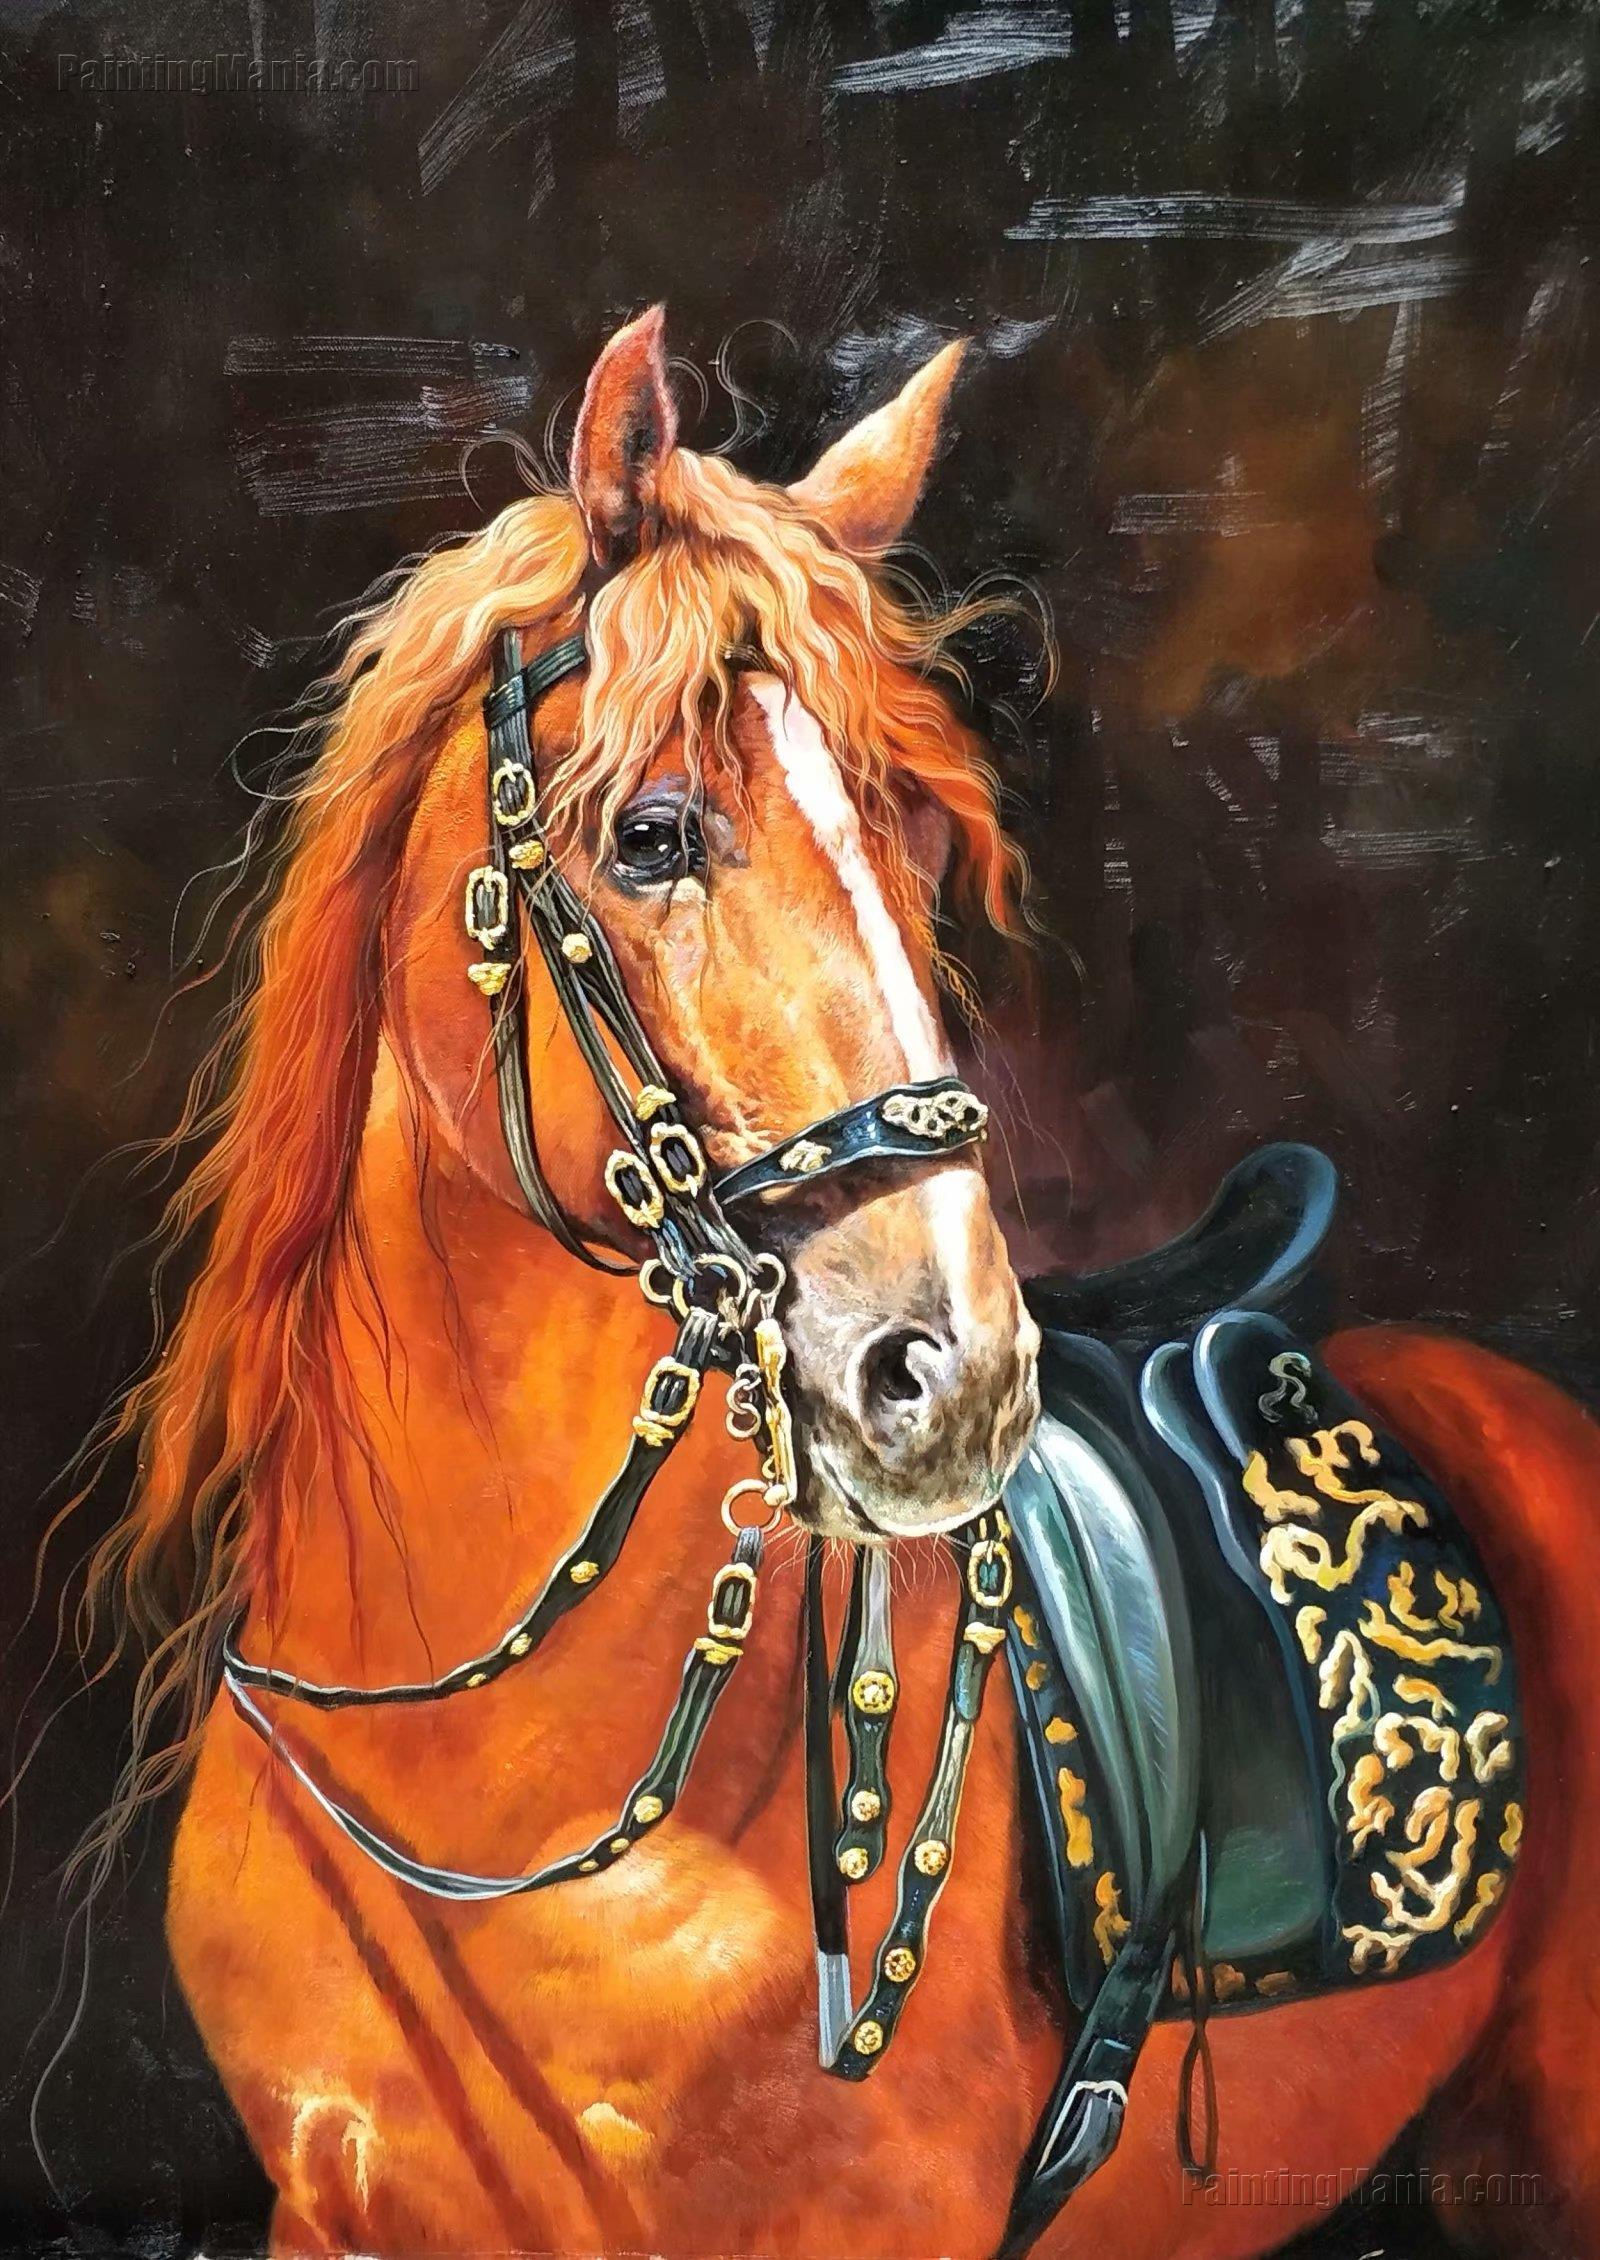 The Horse with Saddle